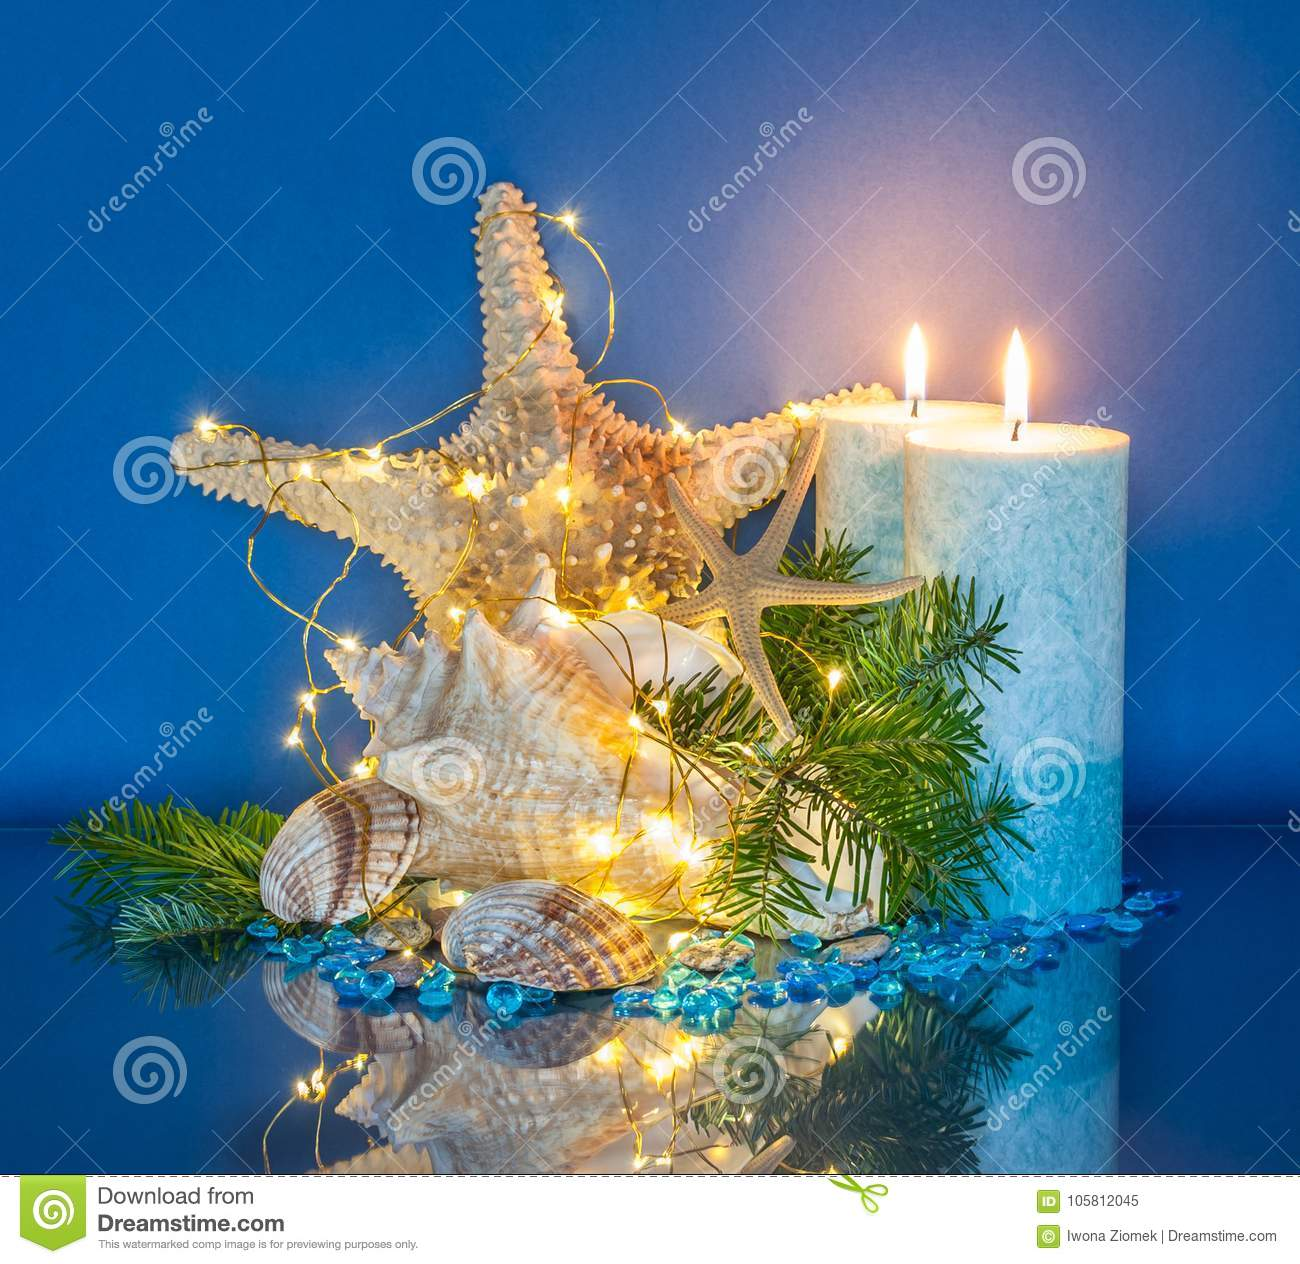 marine christmas decoration with fairy lights blue candles seashell and starfish